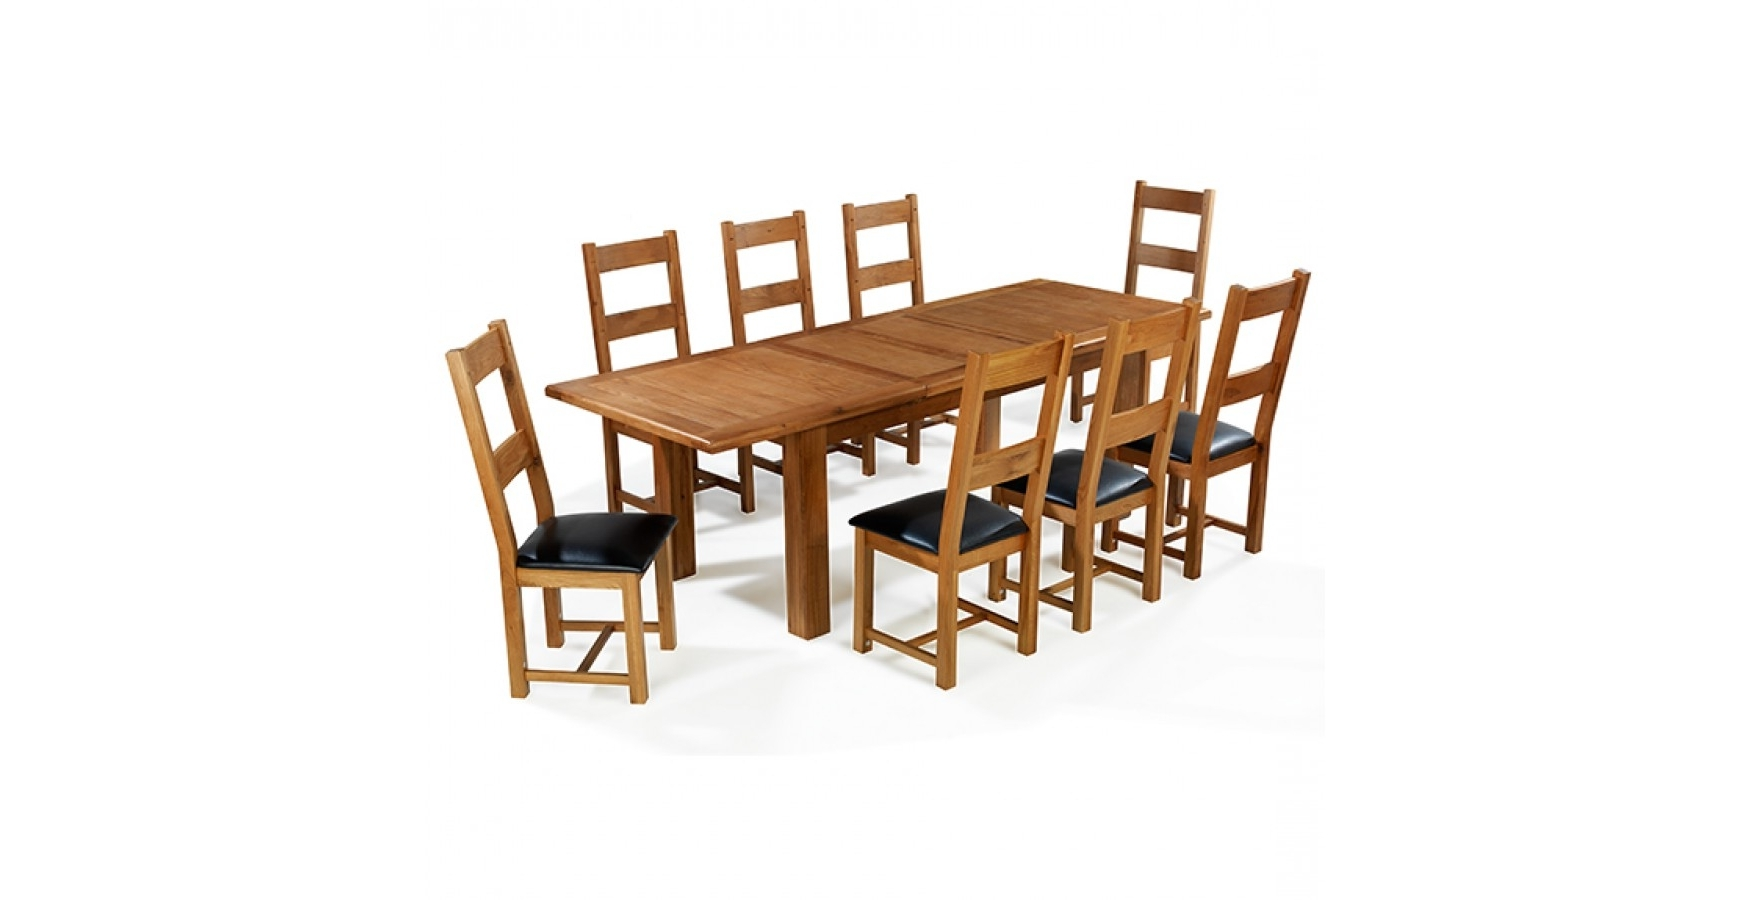 Oak Dining Tables And 8 Chairs Within Favorite Emsworth Oak 180 250 Cm Extending Dining Table And 8 Chairs (View 21 of 25)